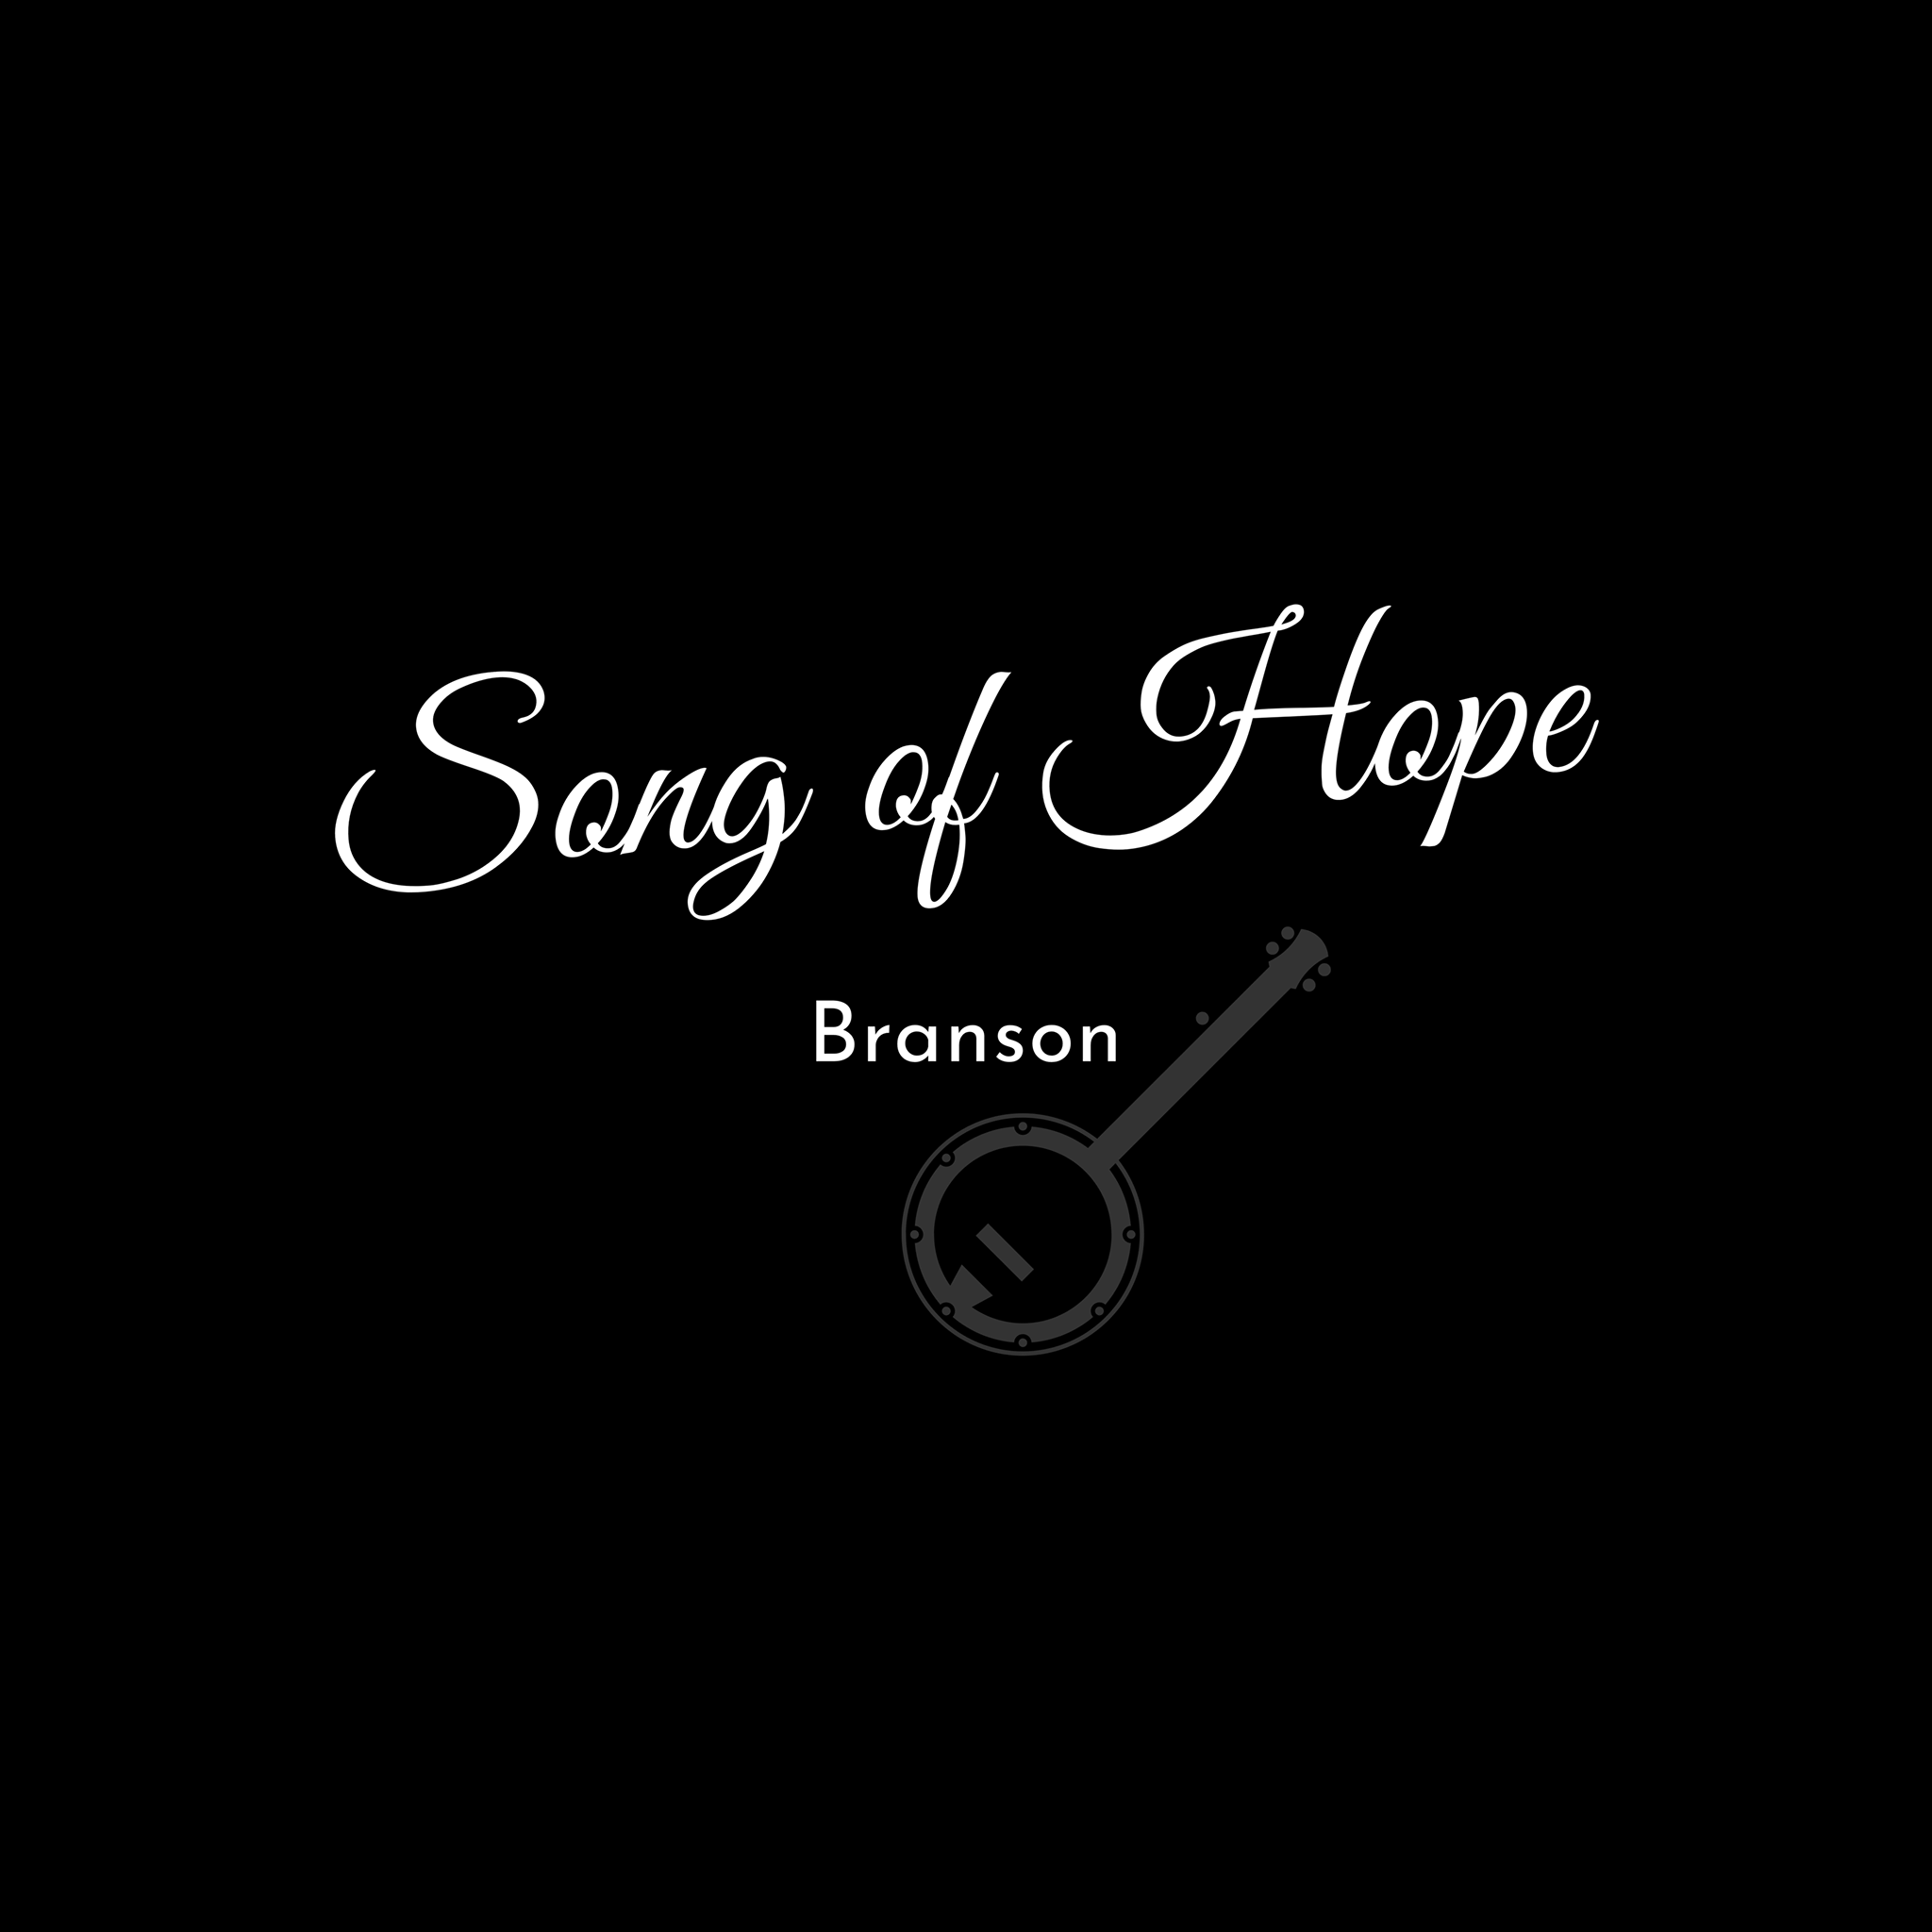 Song of Hope Branson